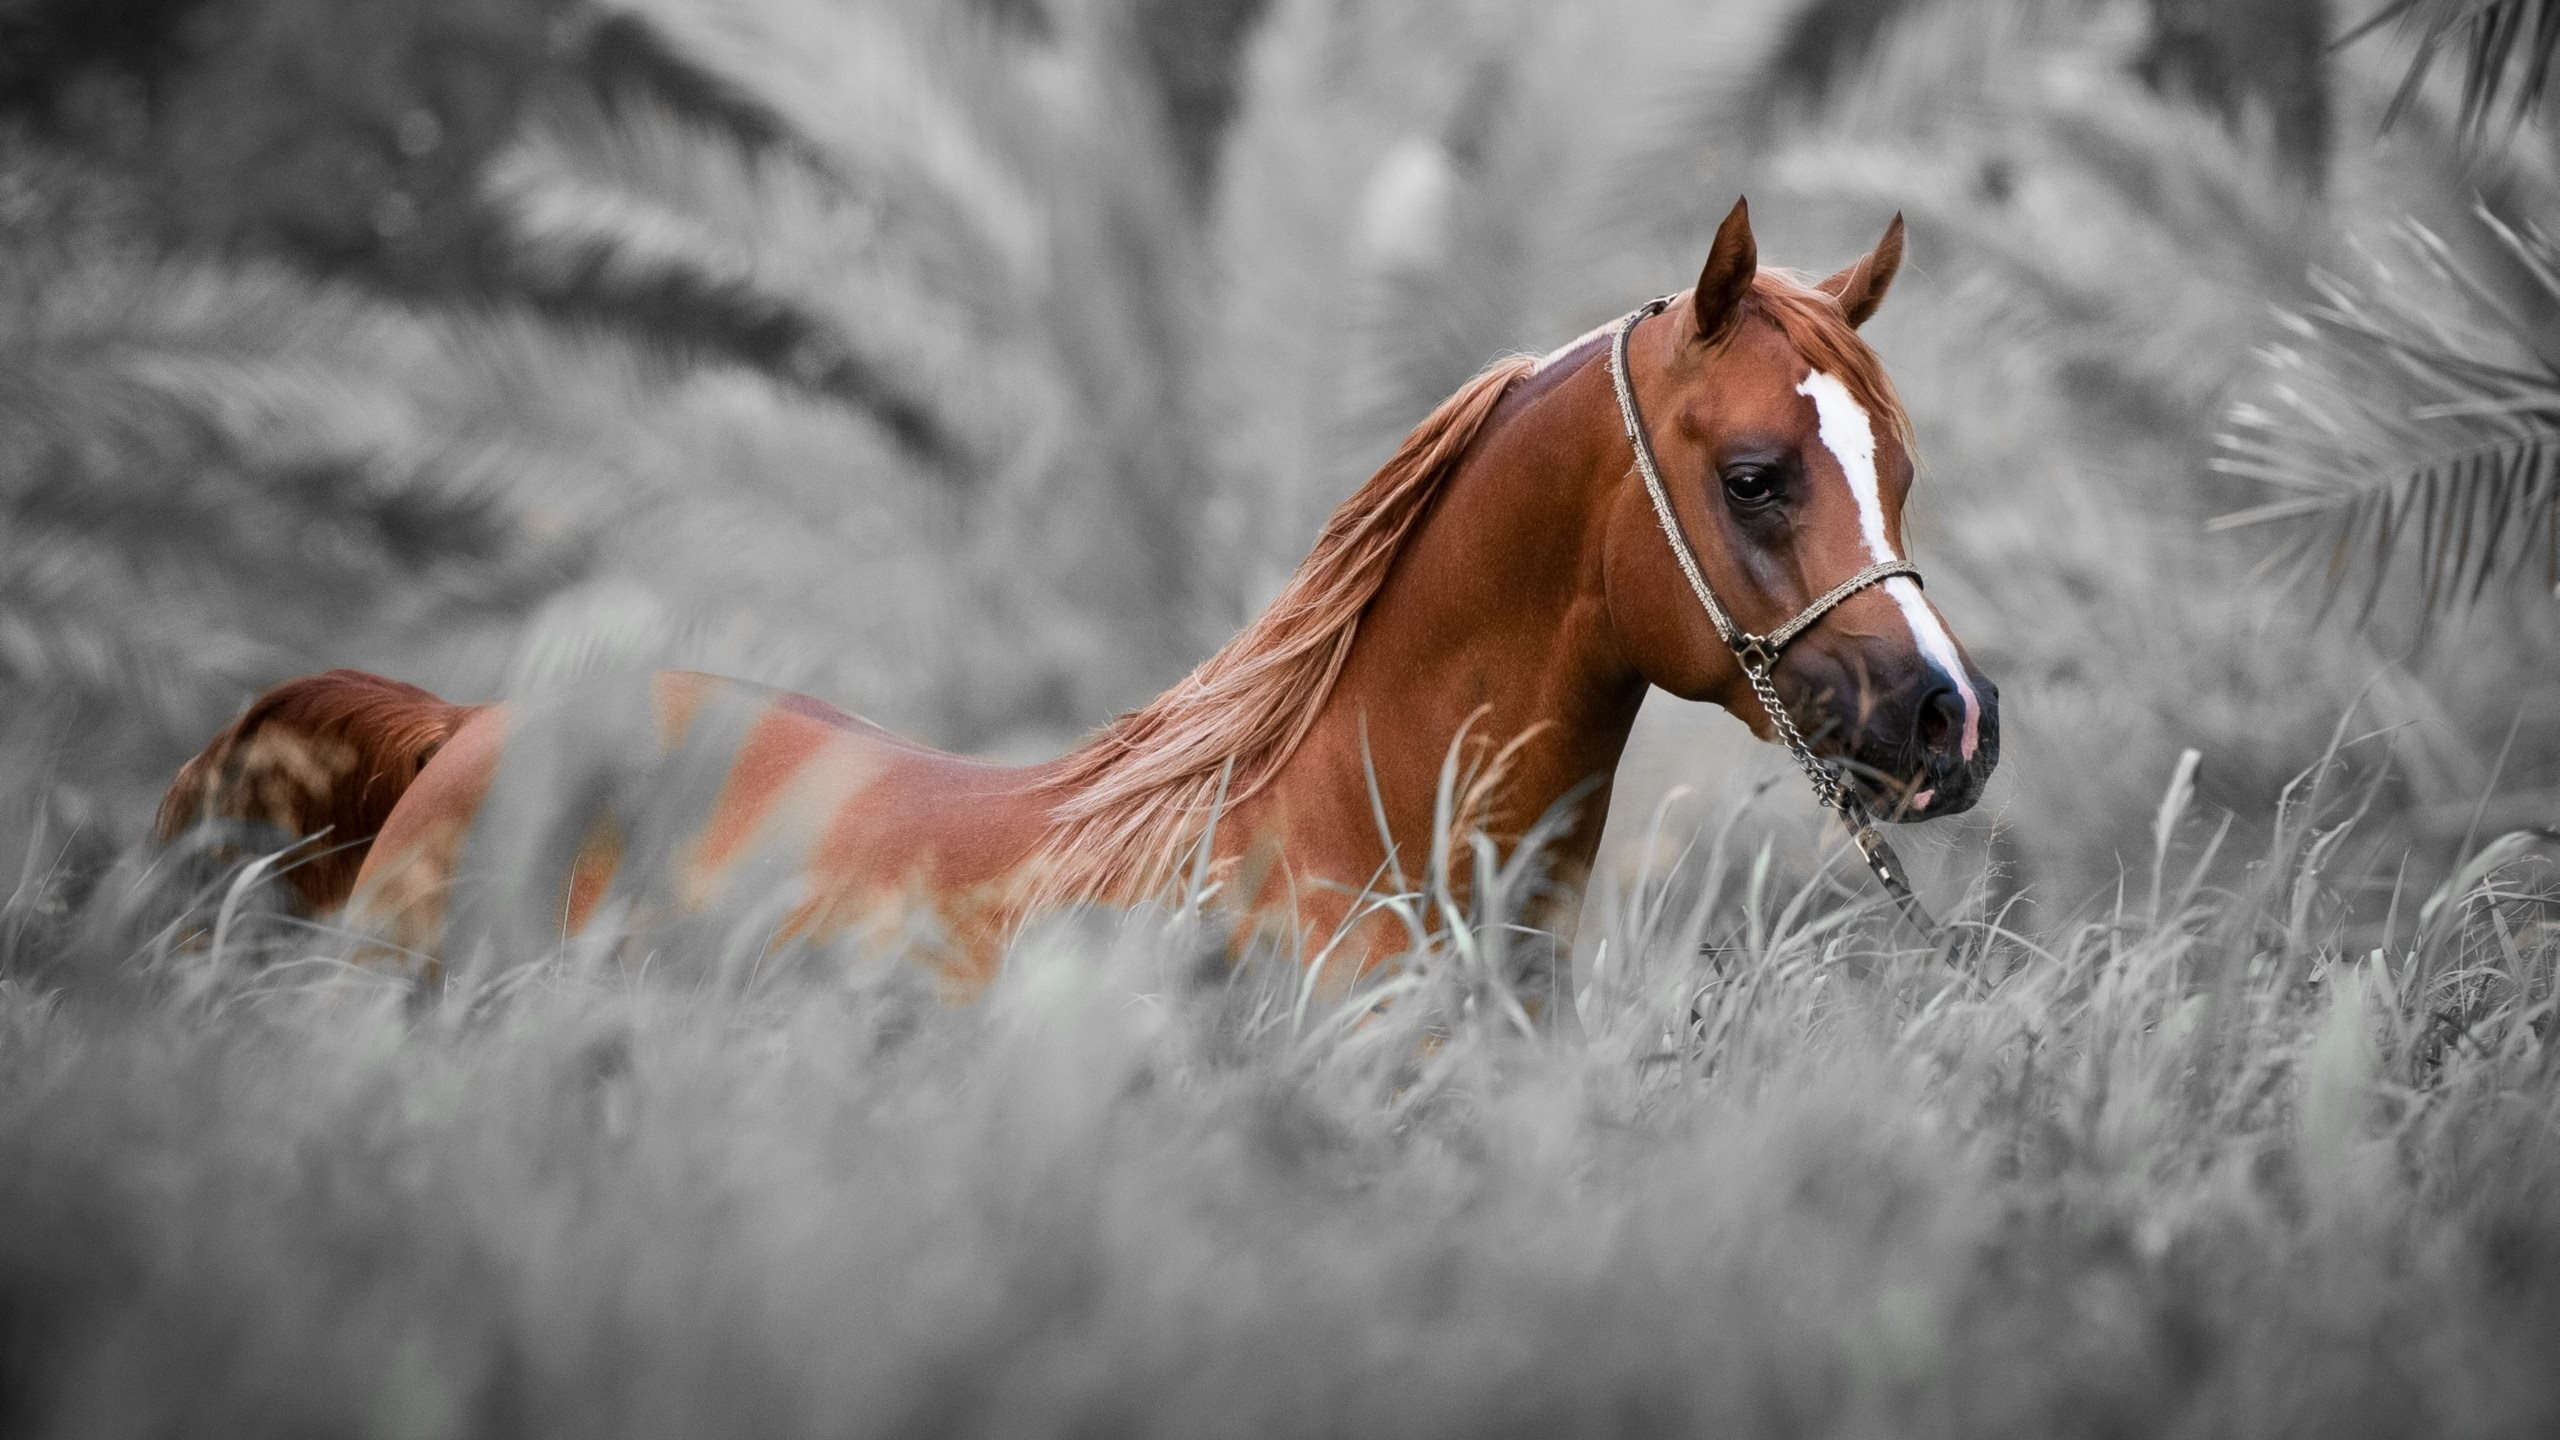 Horse wallpapers hd - Free horse backgrounds ...